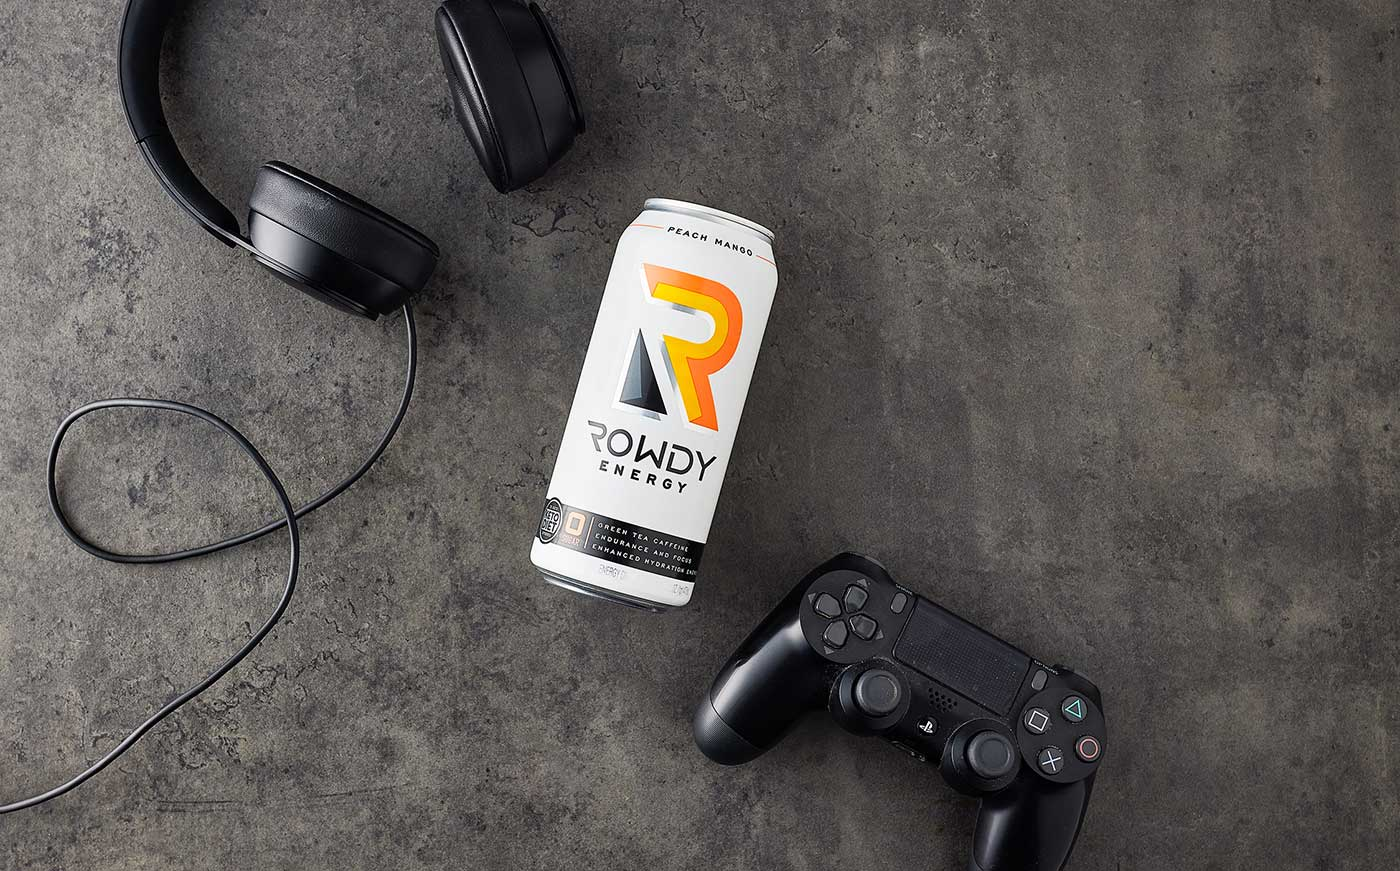 Rowdy Energy Drink on a table next to a game controller and headphones. Rowdy Energy Flavor Peach Mango